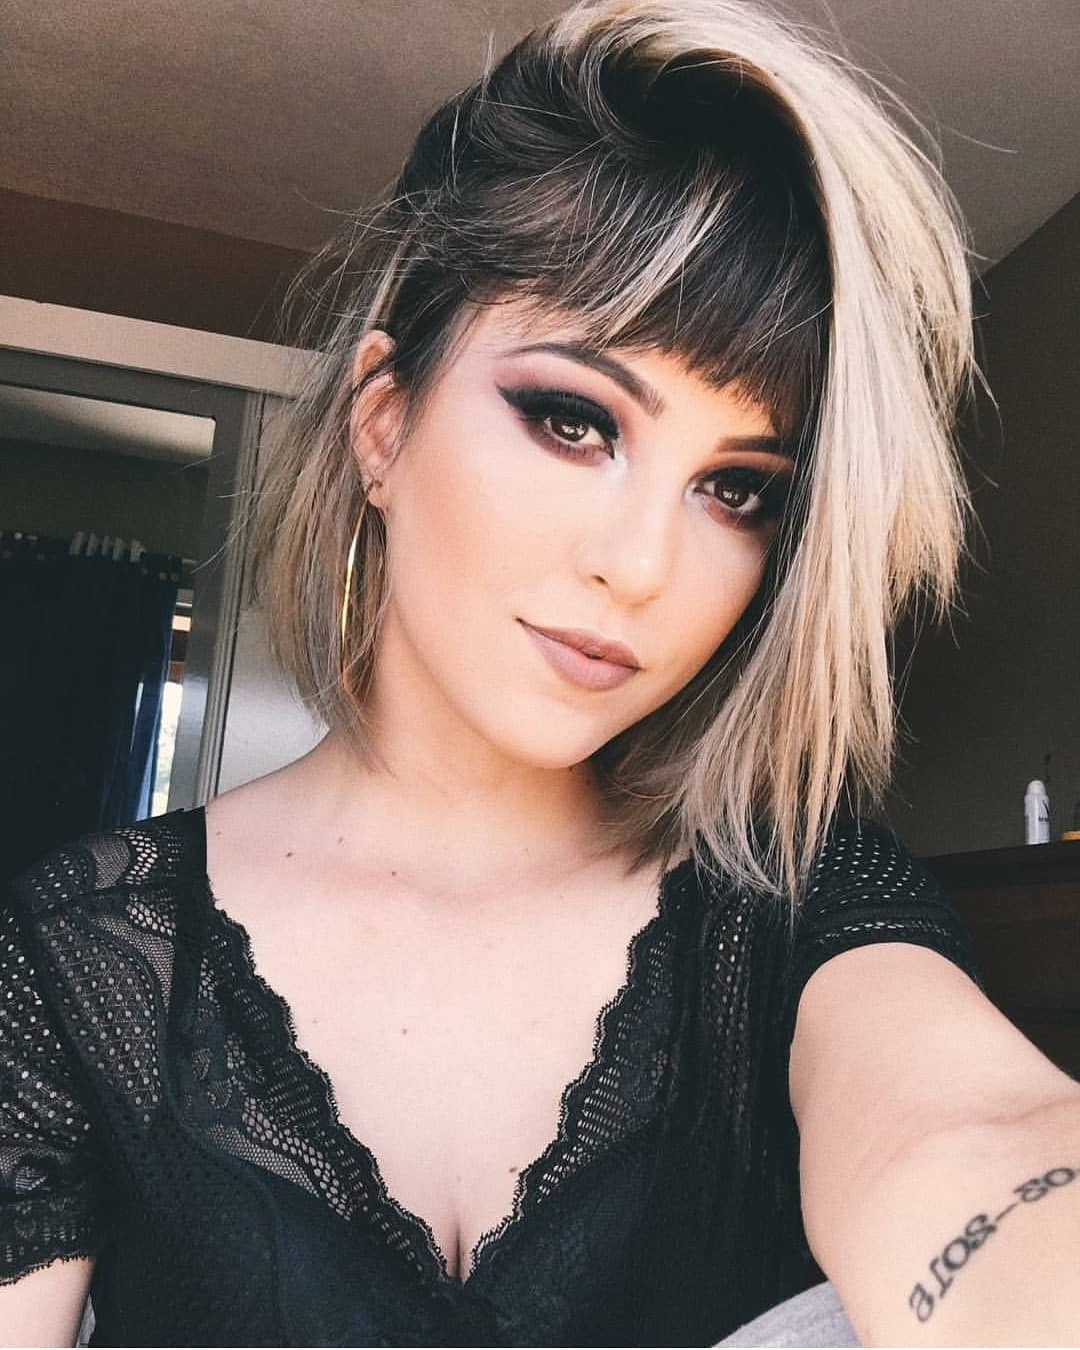 10 Cute Short Hairstyles And Haircuts For Young Girls, Short Hair 2019 Intended For Cute Hairstyles For Girls With Short Hair (View 19 of 25)